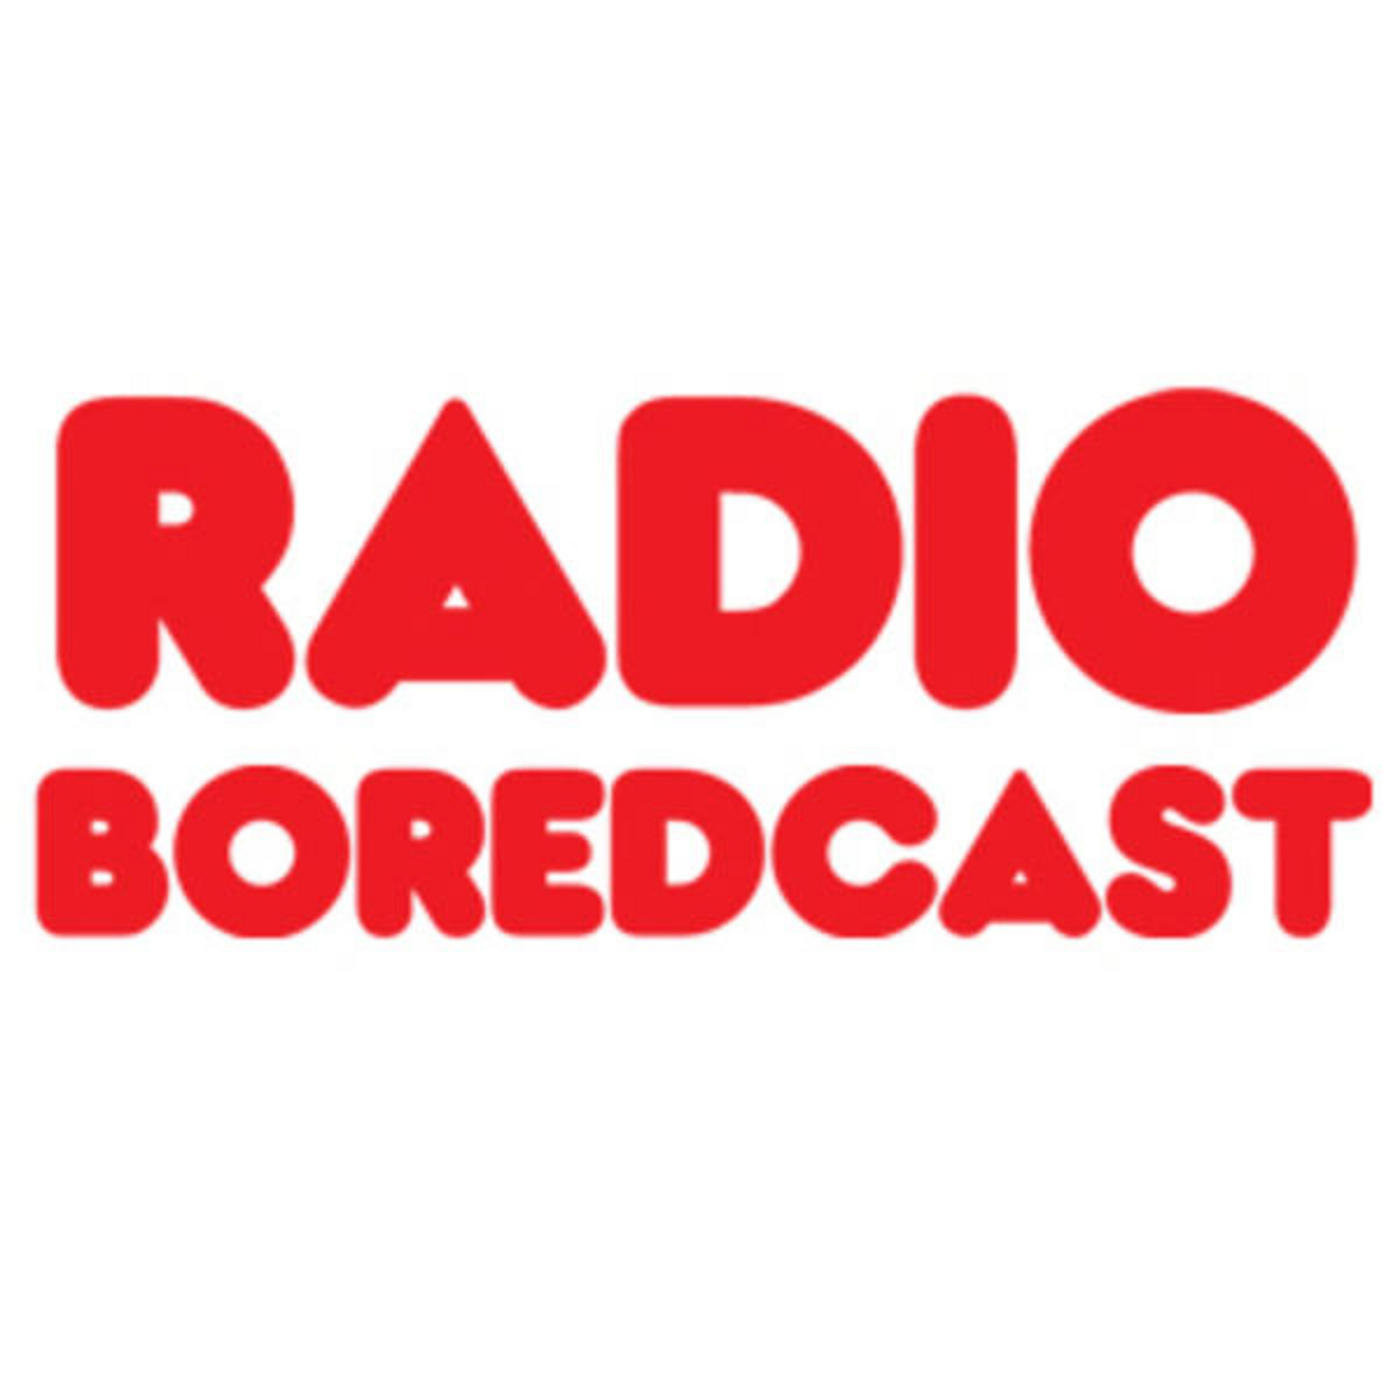 Episode 12 - Preview of 26th, 27th and 28th March on Radio Boredcast